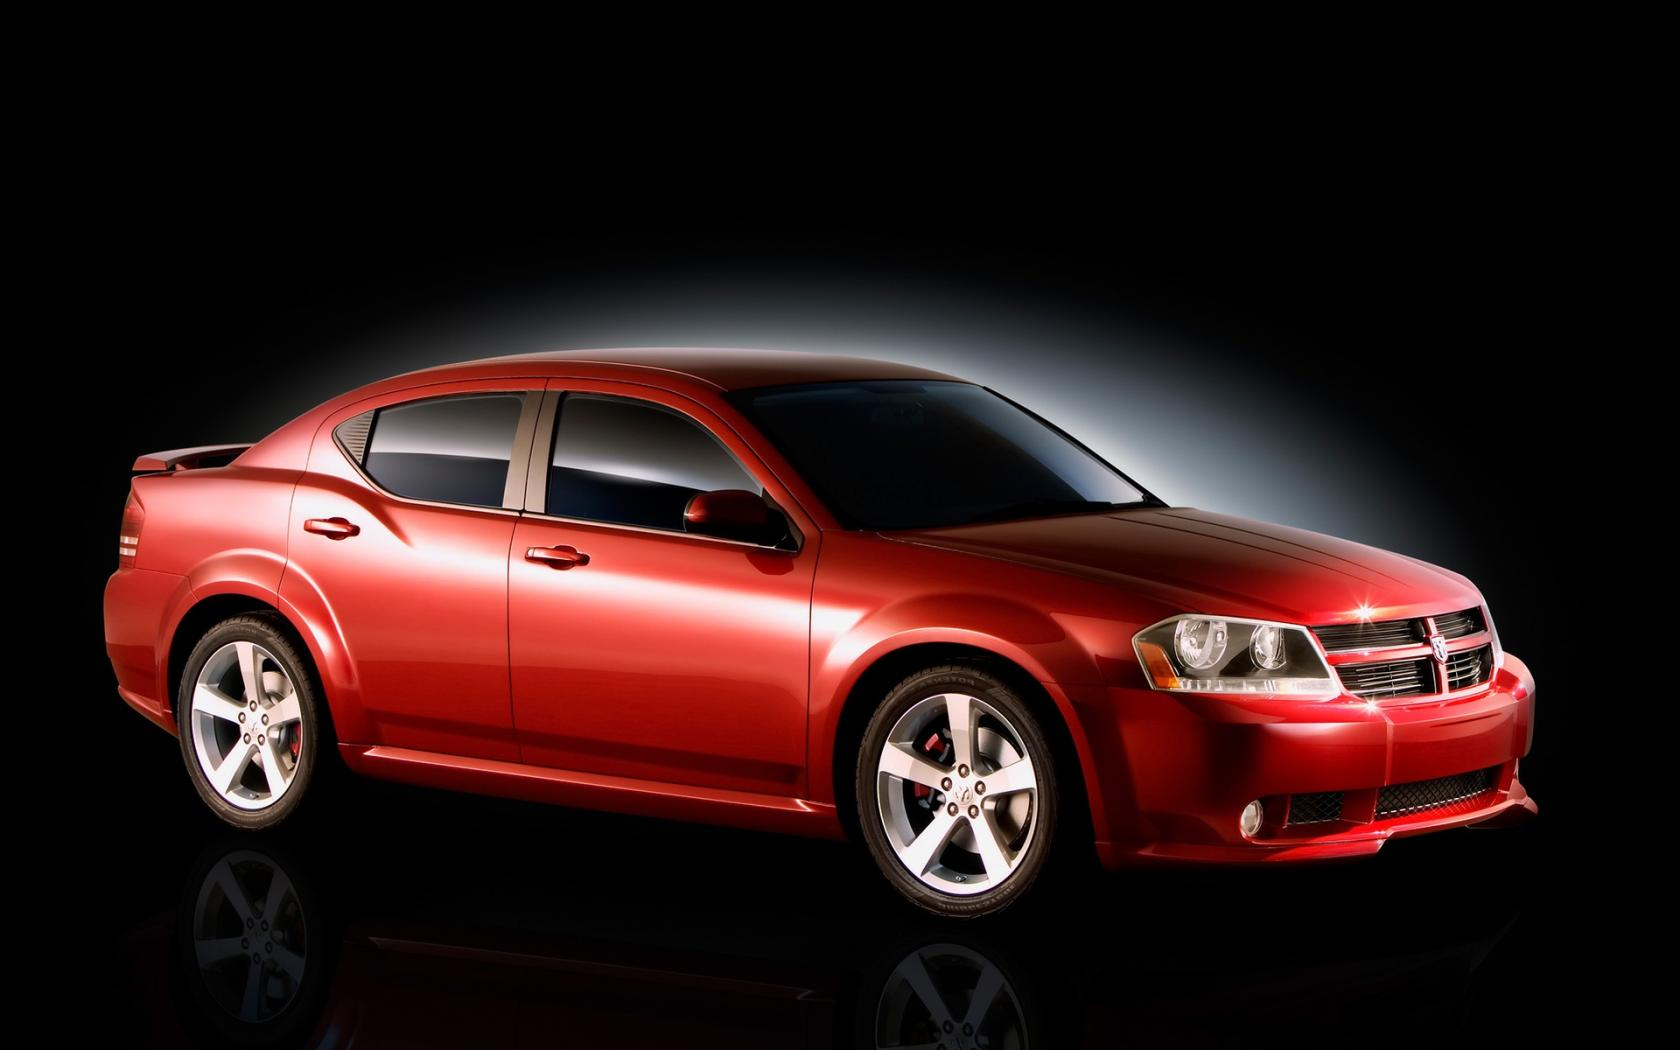 2006 Dodge Avenger Concept Front And Side 1680x1050